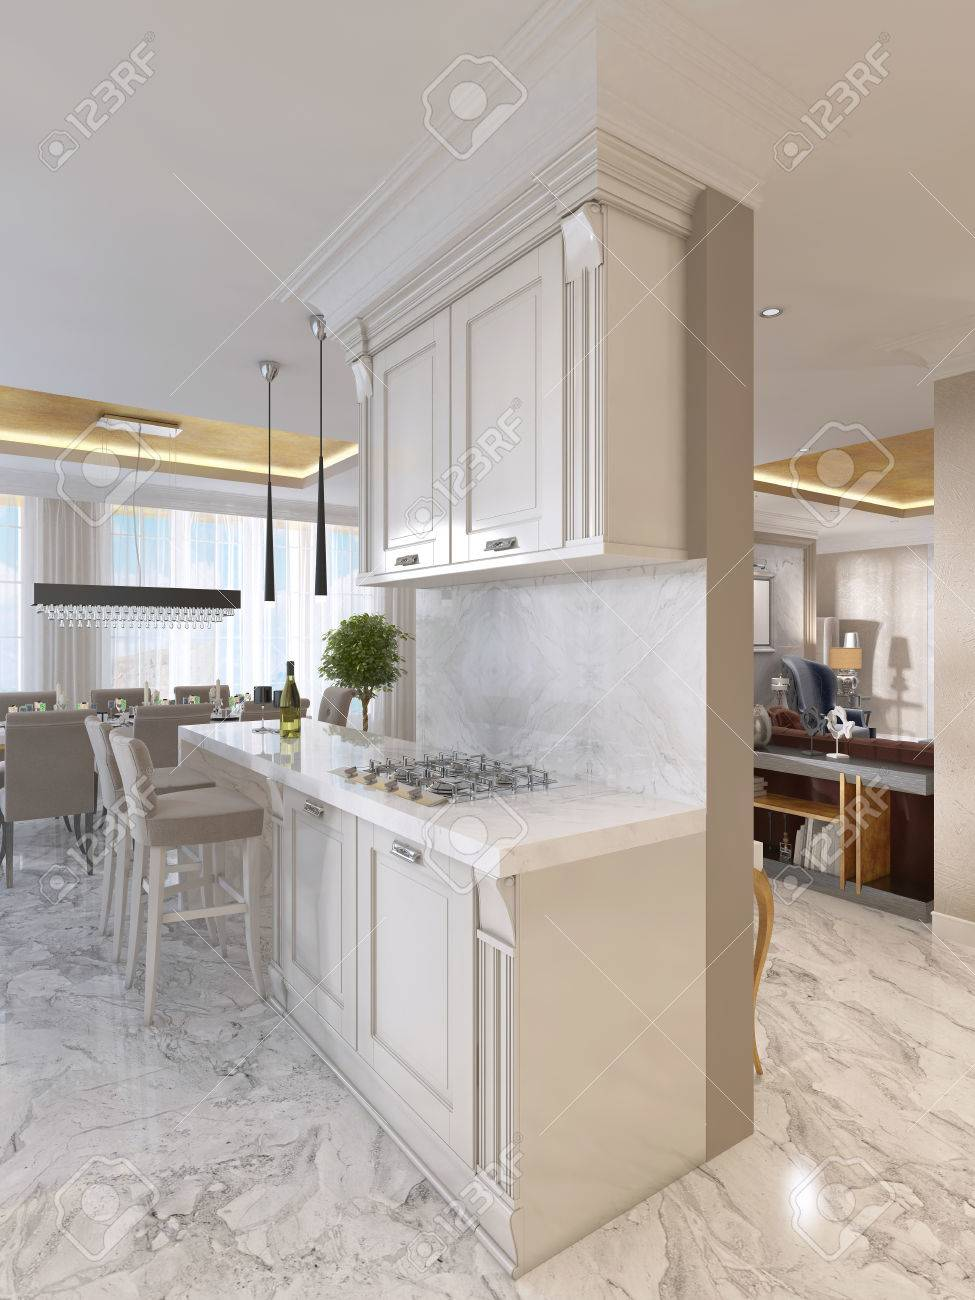 Art Deco Design Cuisine Luxury Kitchen With Opaline Furniture In Art Deco Style With